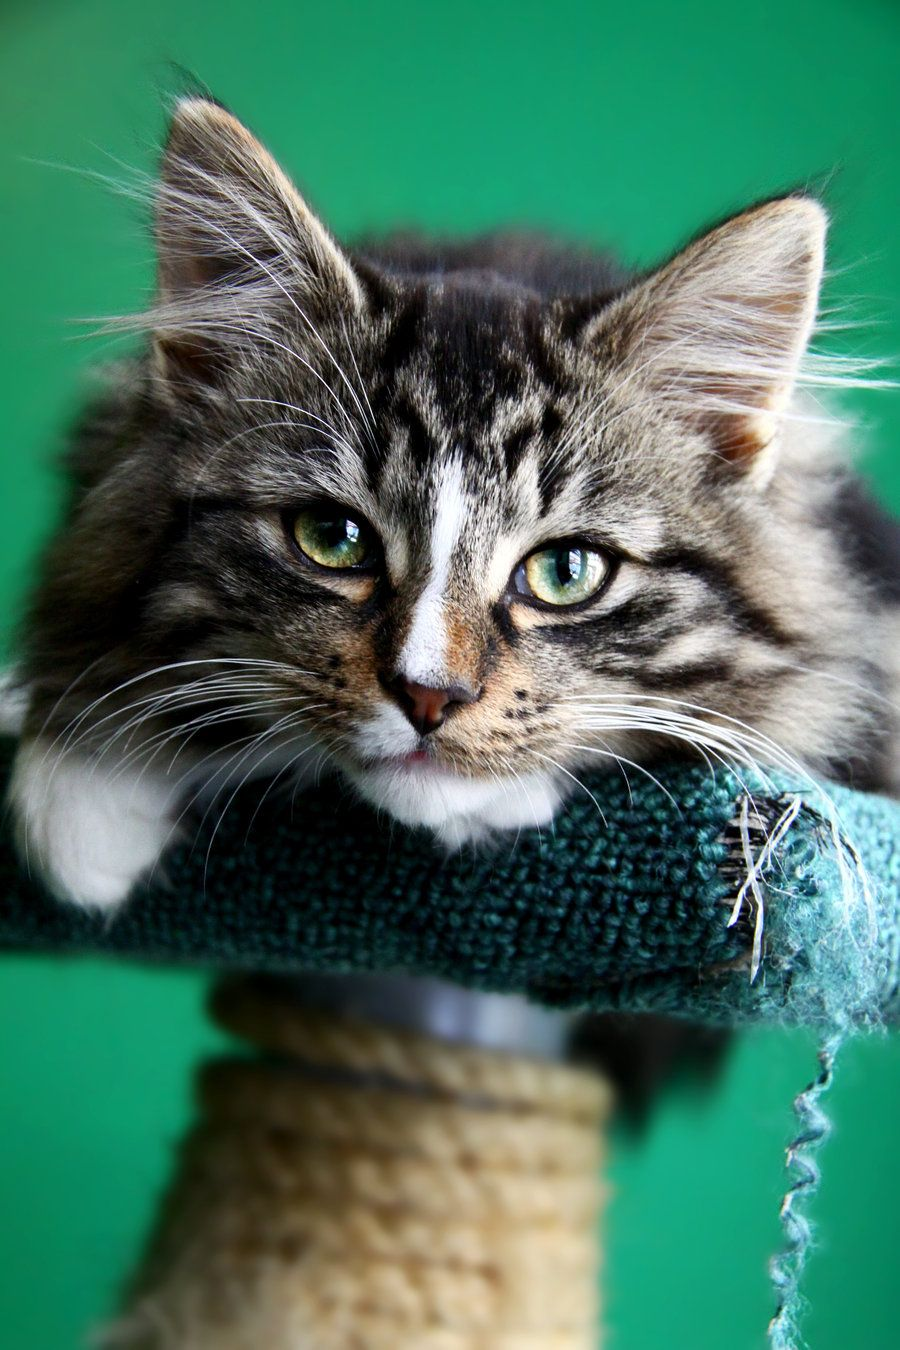 Lovely cat..looks quite a bit like my Maine Coon runt, but this is ...